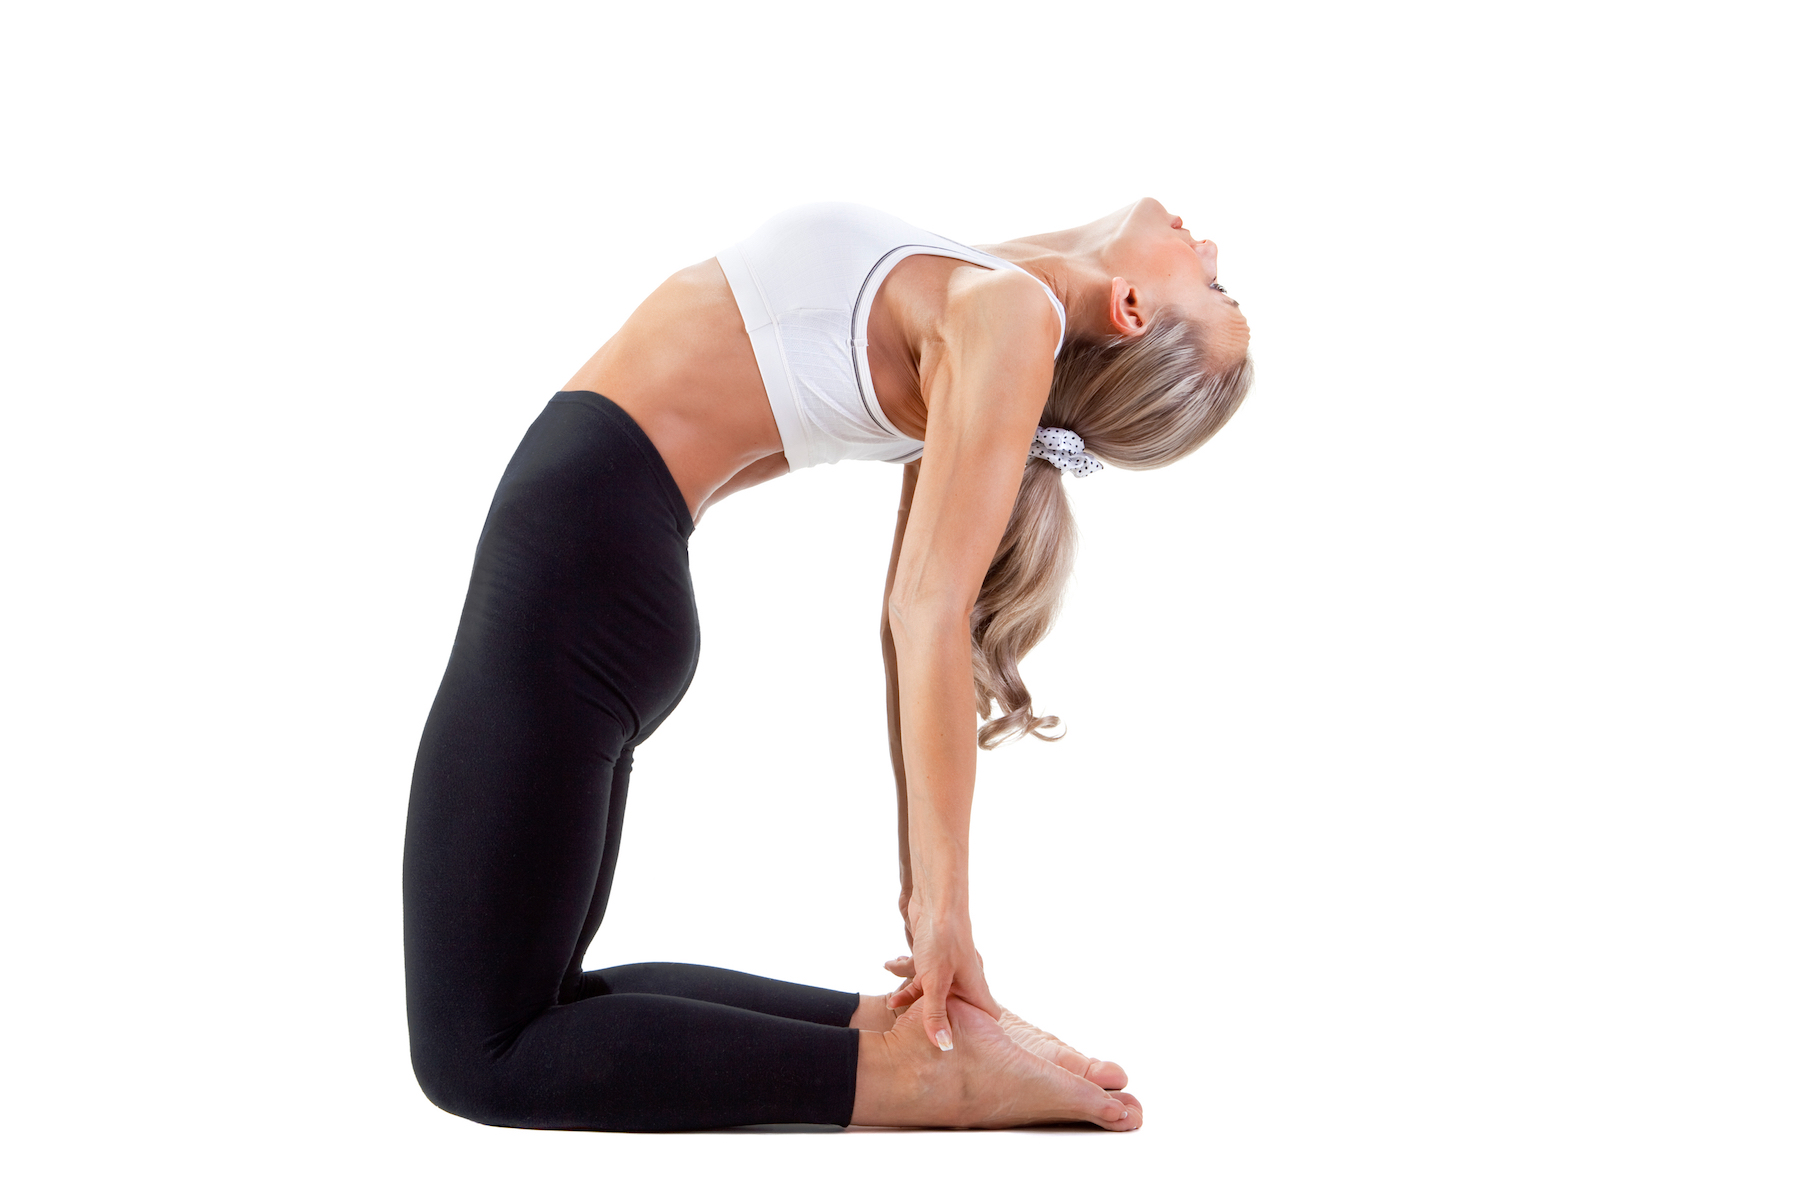 Camel Pose for Asthma   What Therapy